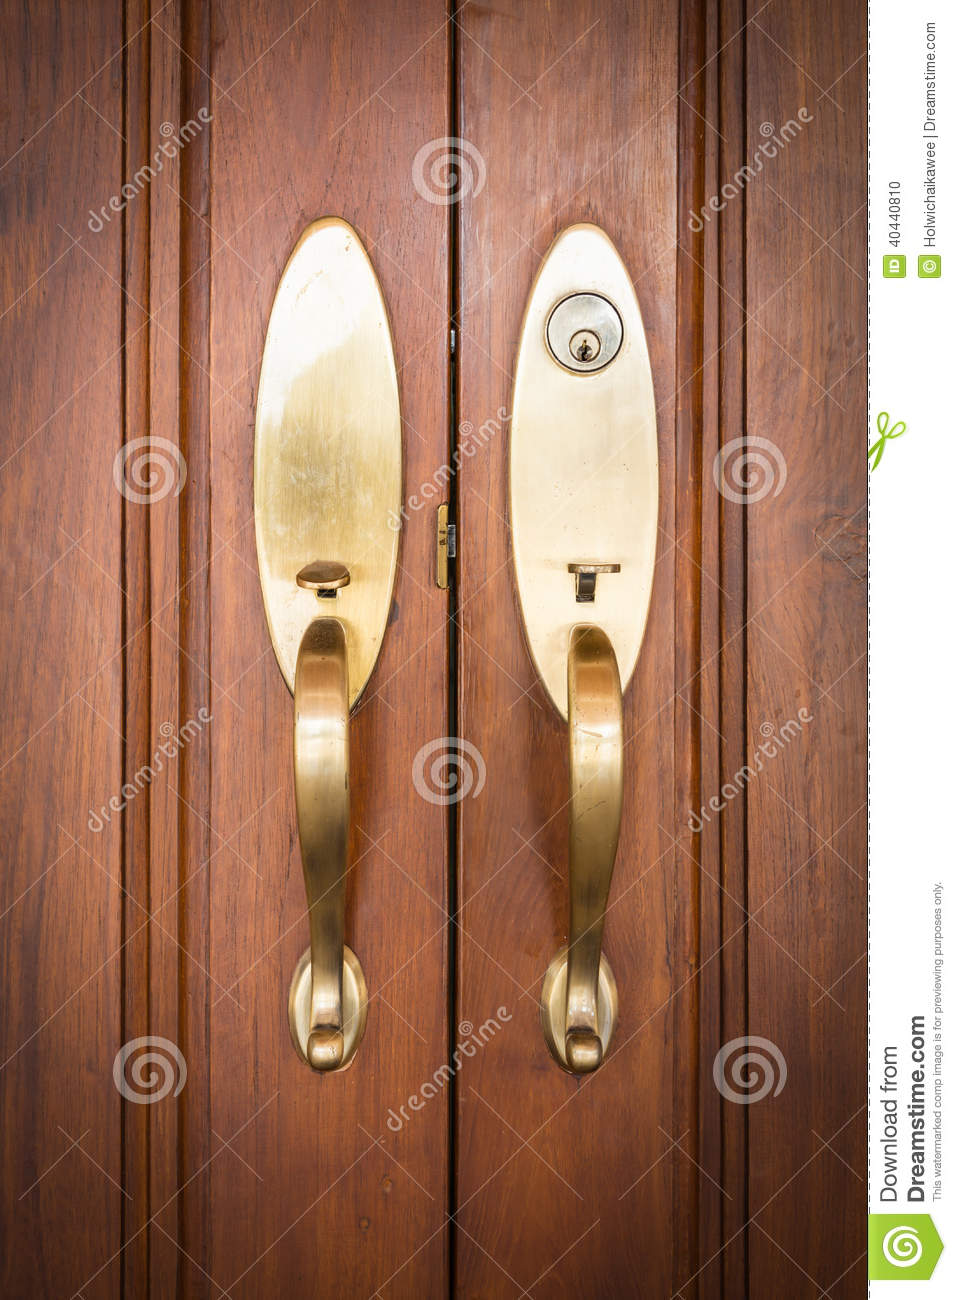 Door handles with key stock photo image 40440810 for Key drawer handles